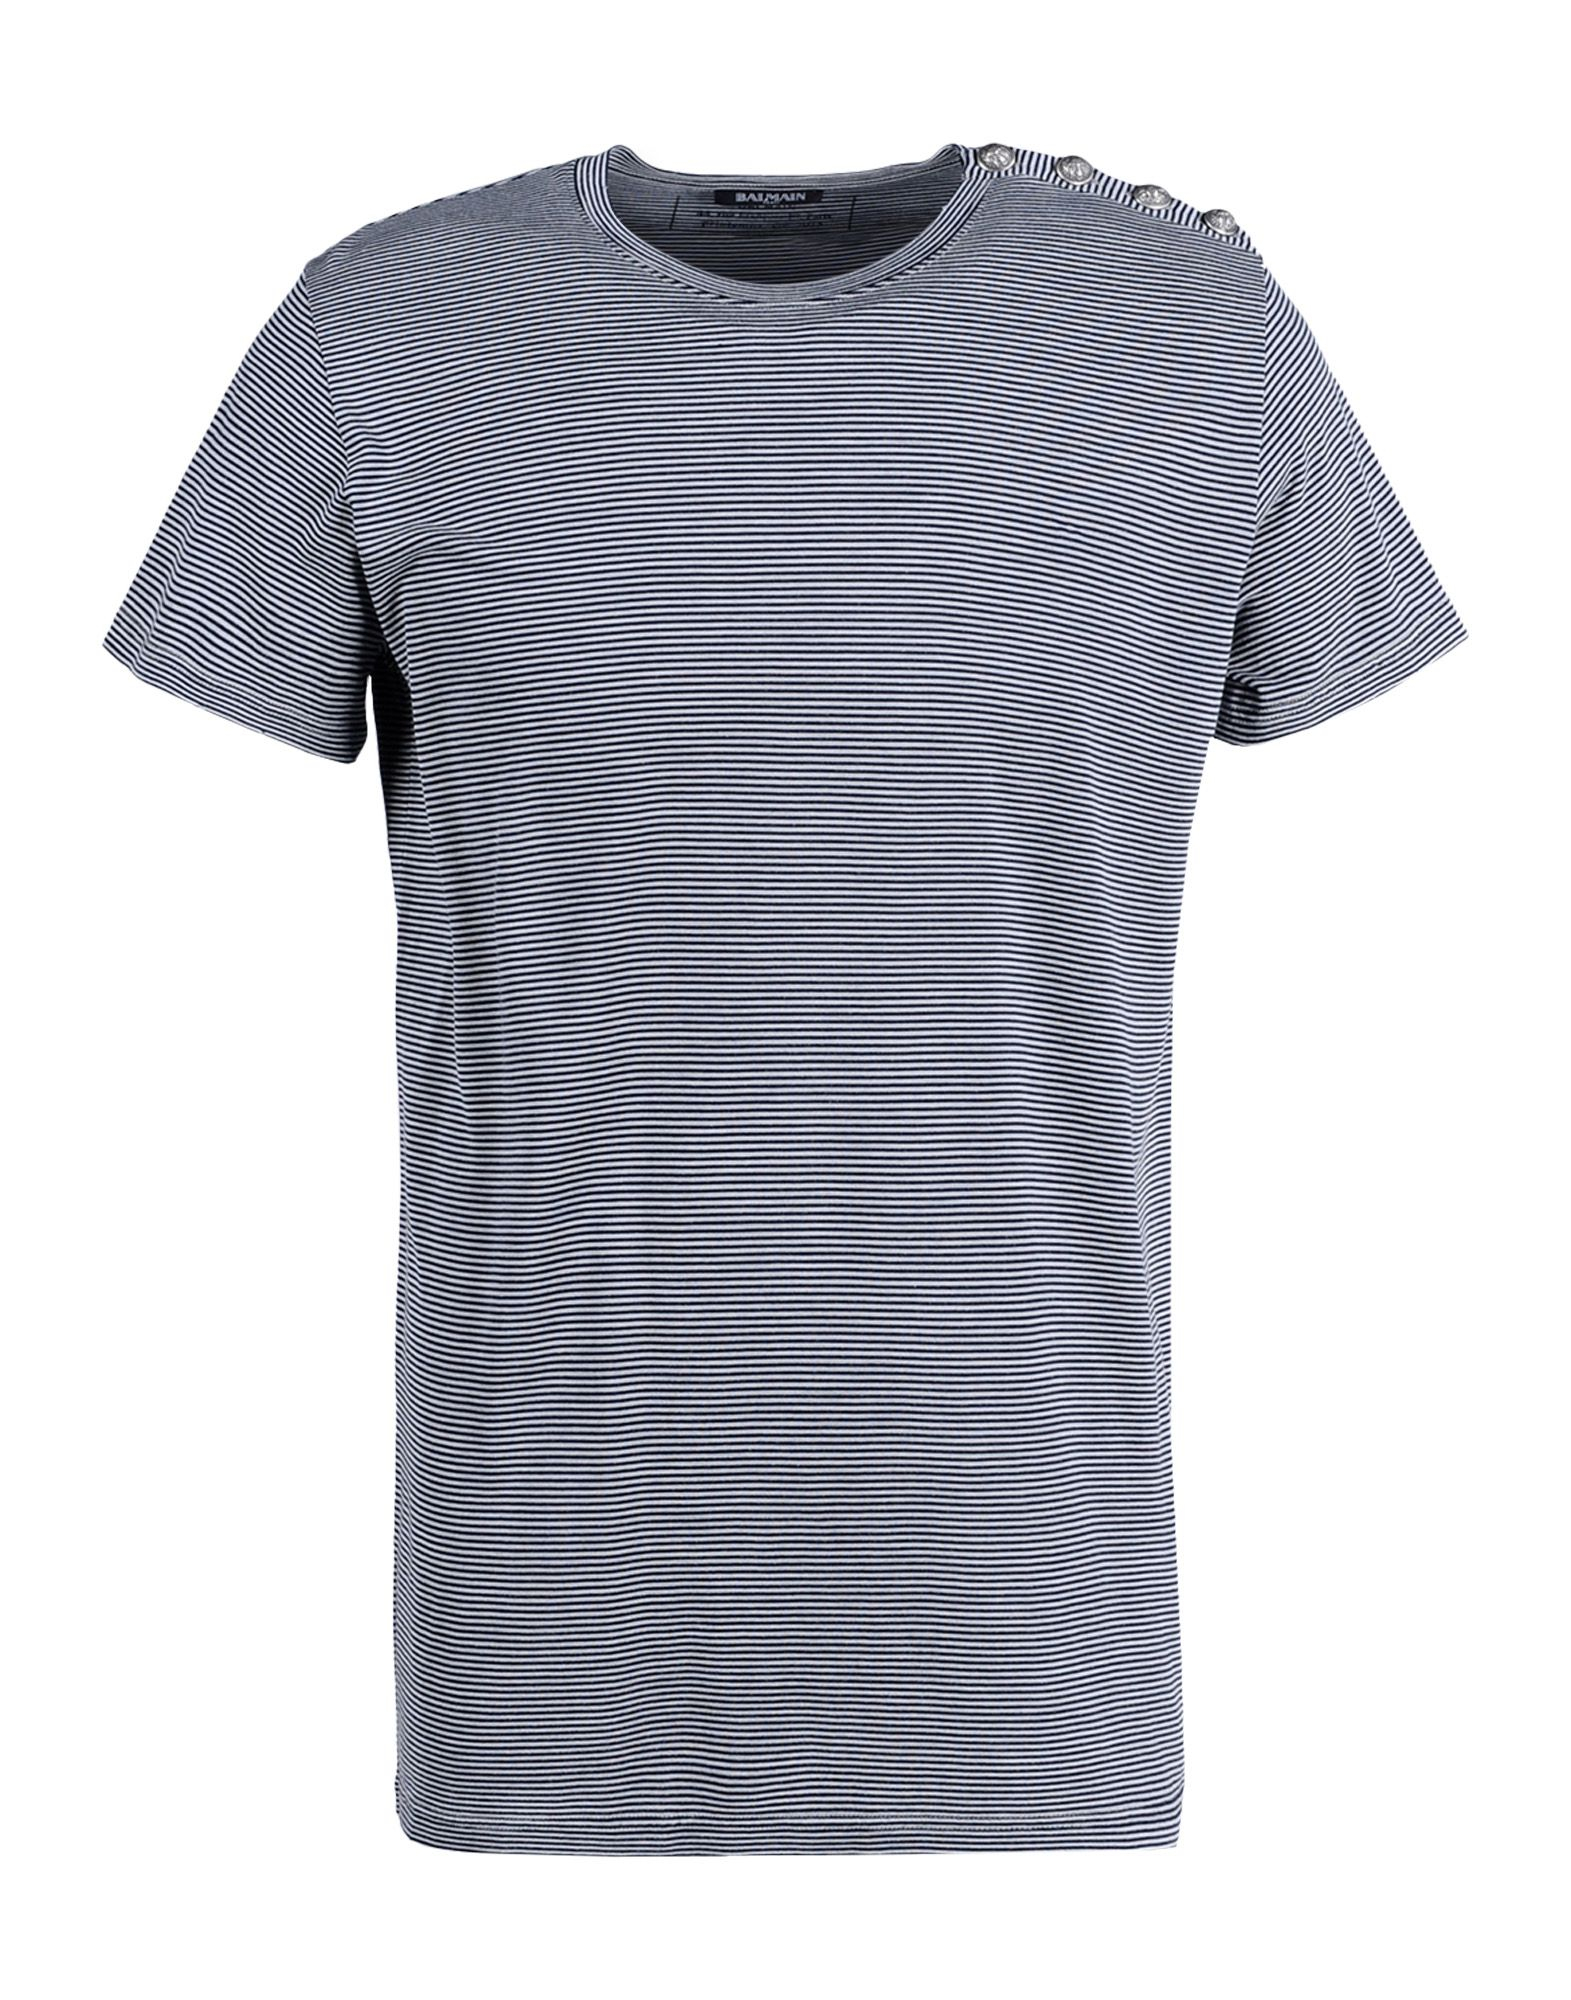 balmain short sleeve t shirt in blue for men dark blue lyst. Black Bedroom Furniture Sets. Home Design Ideas